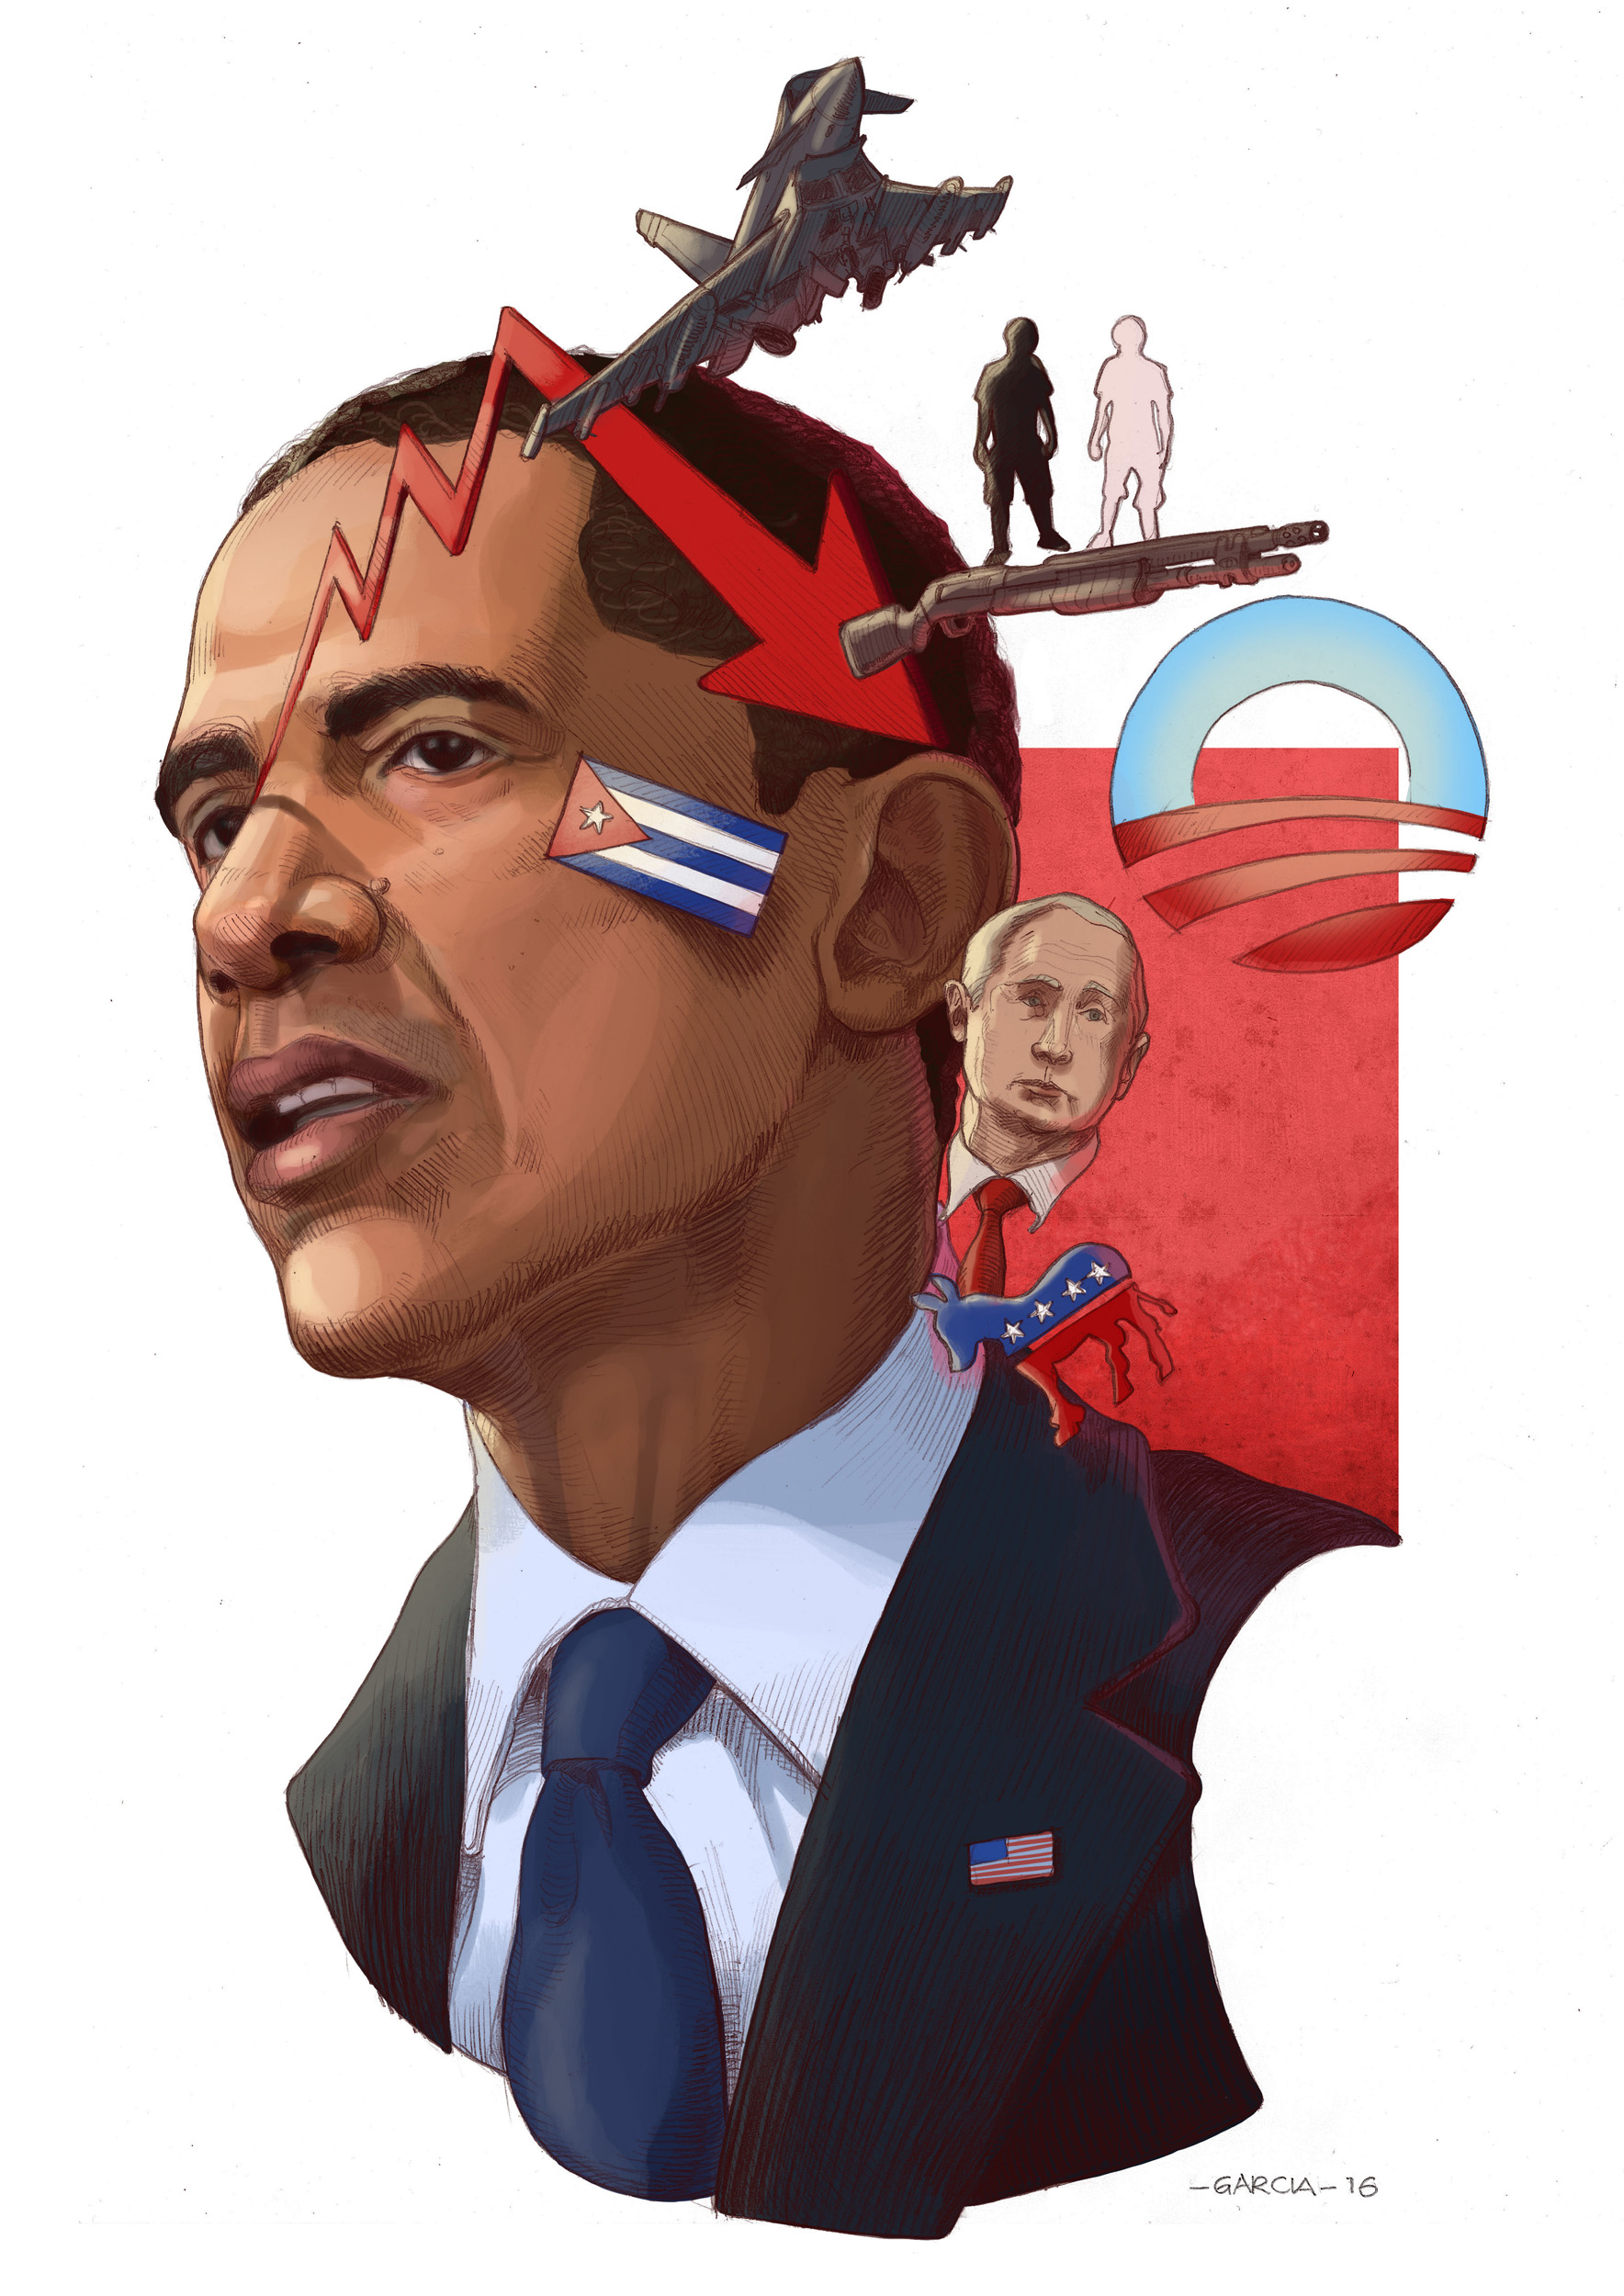 Daniel Garcia Art Illustration Barack Obama President USA America Portrait Caricature 01